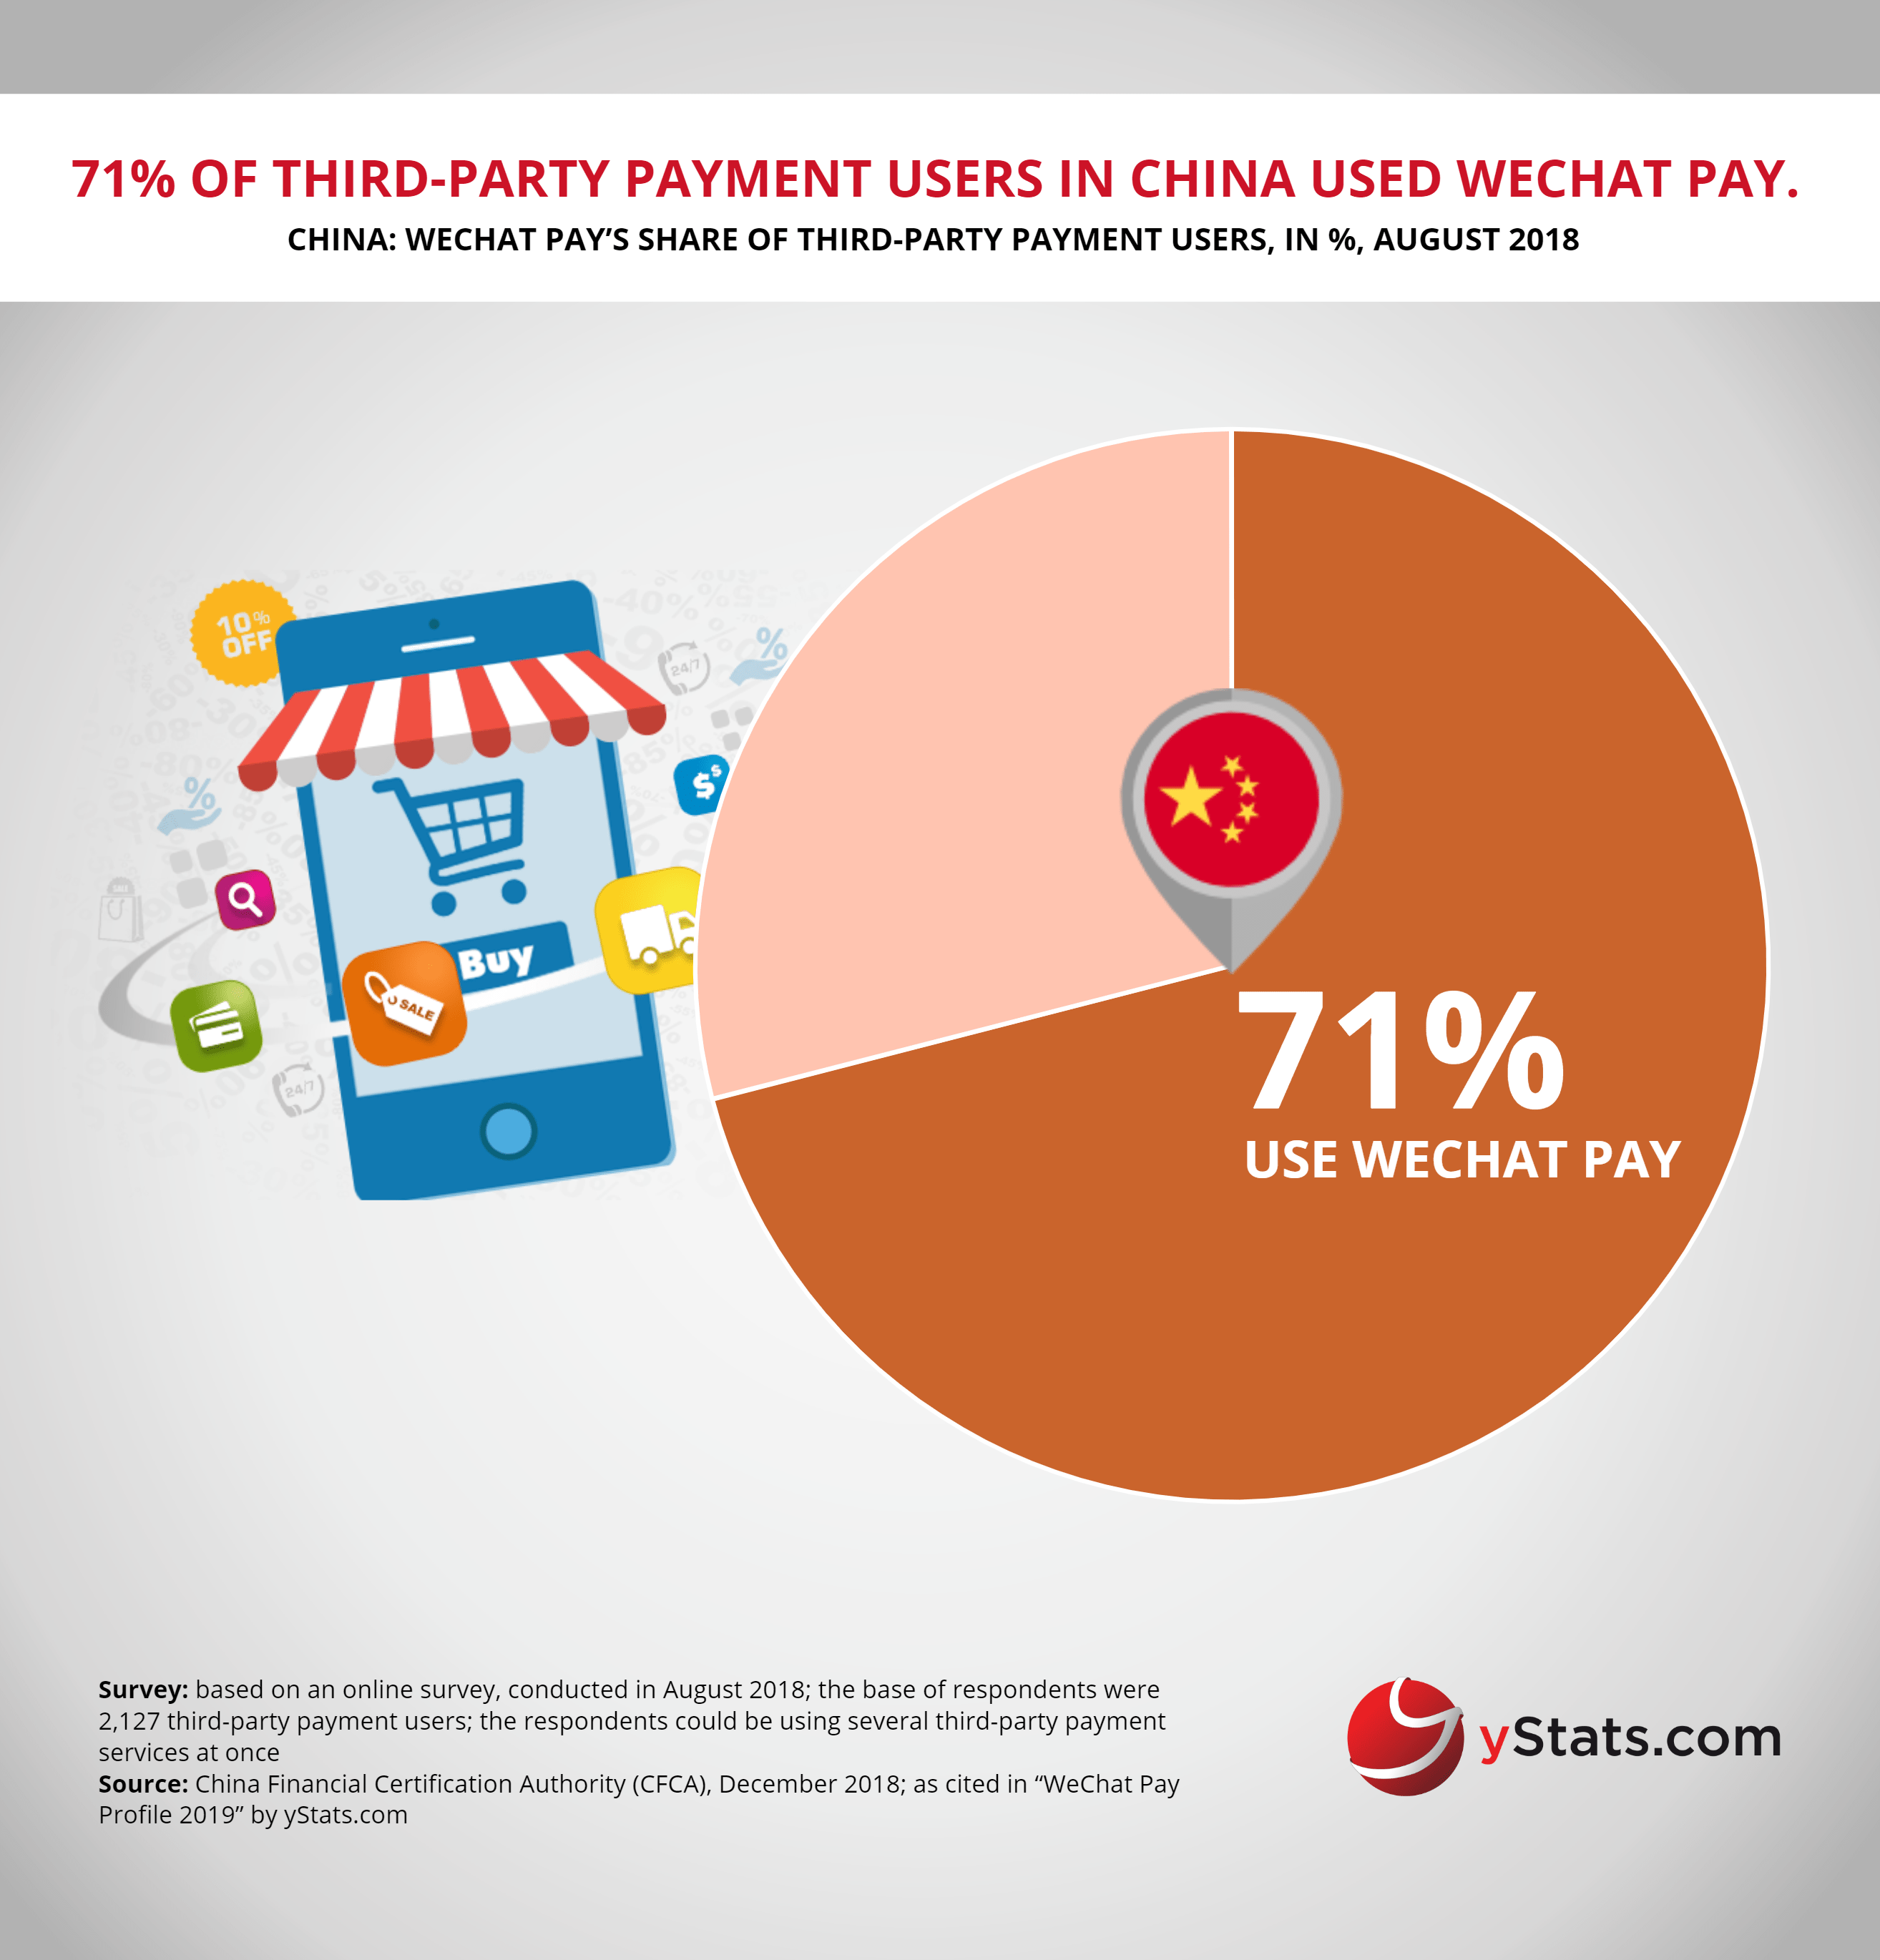 WeChat Pay is China's second leading mobile wallet, reports